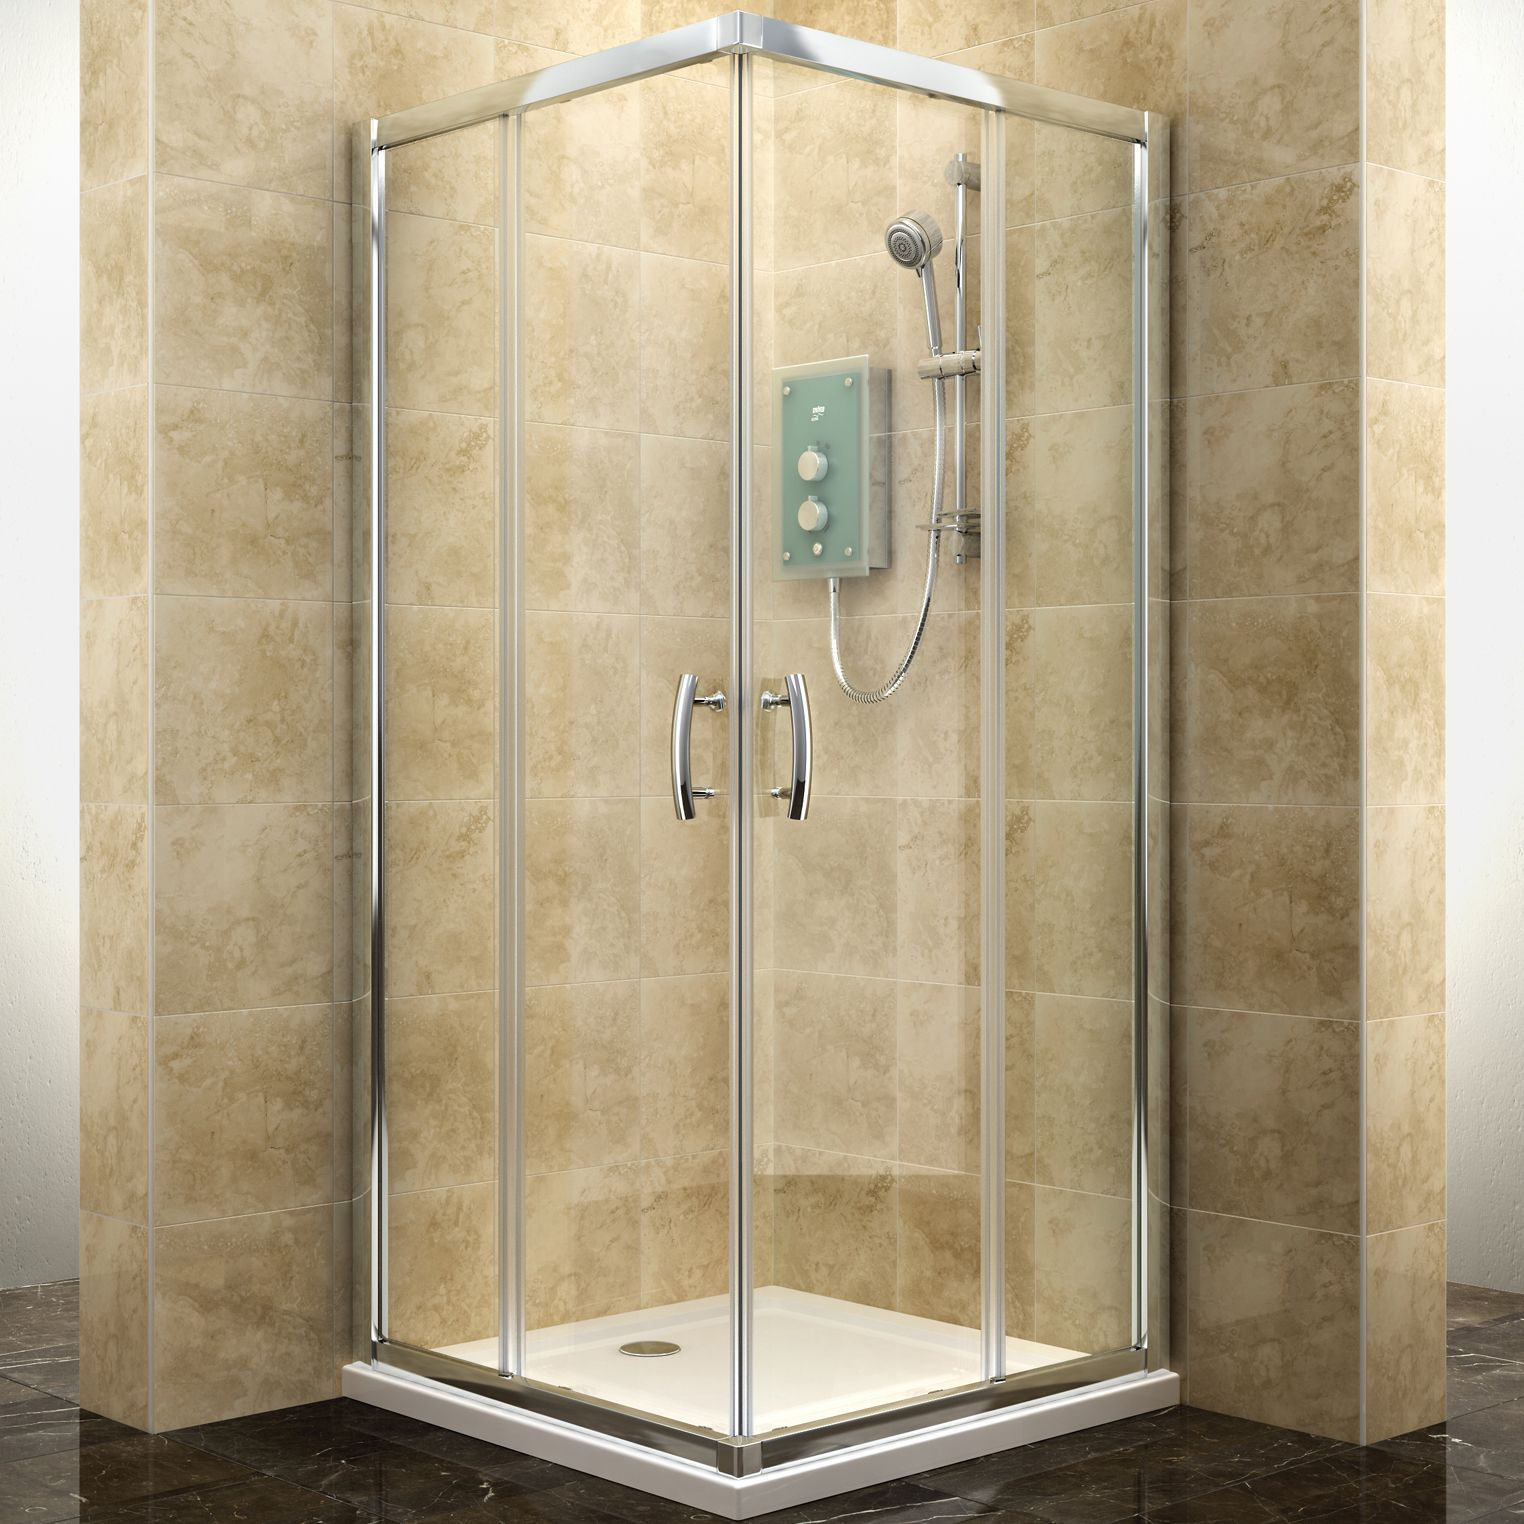 Cooke Lewis Deluvio Square Shower Enclosure Tray W 800mm D 800mm Departments Diy At B Q Square Shower Enclosures Shower Enclosure Shower Fittings